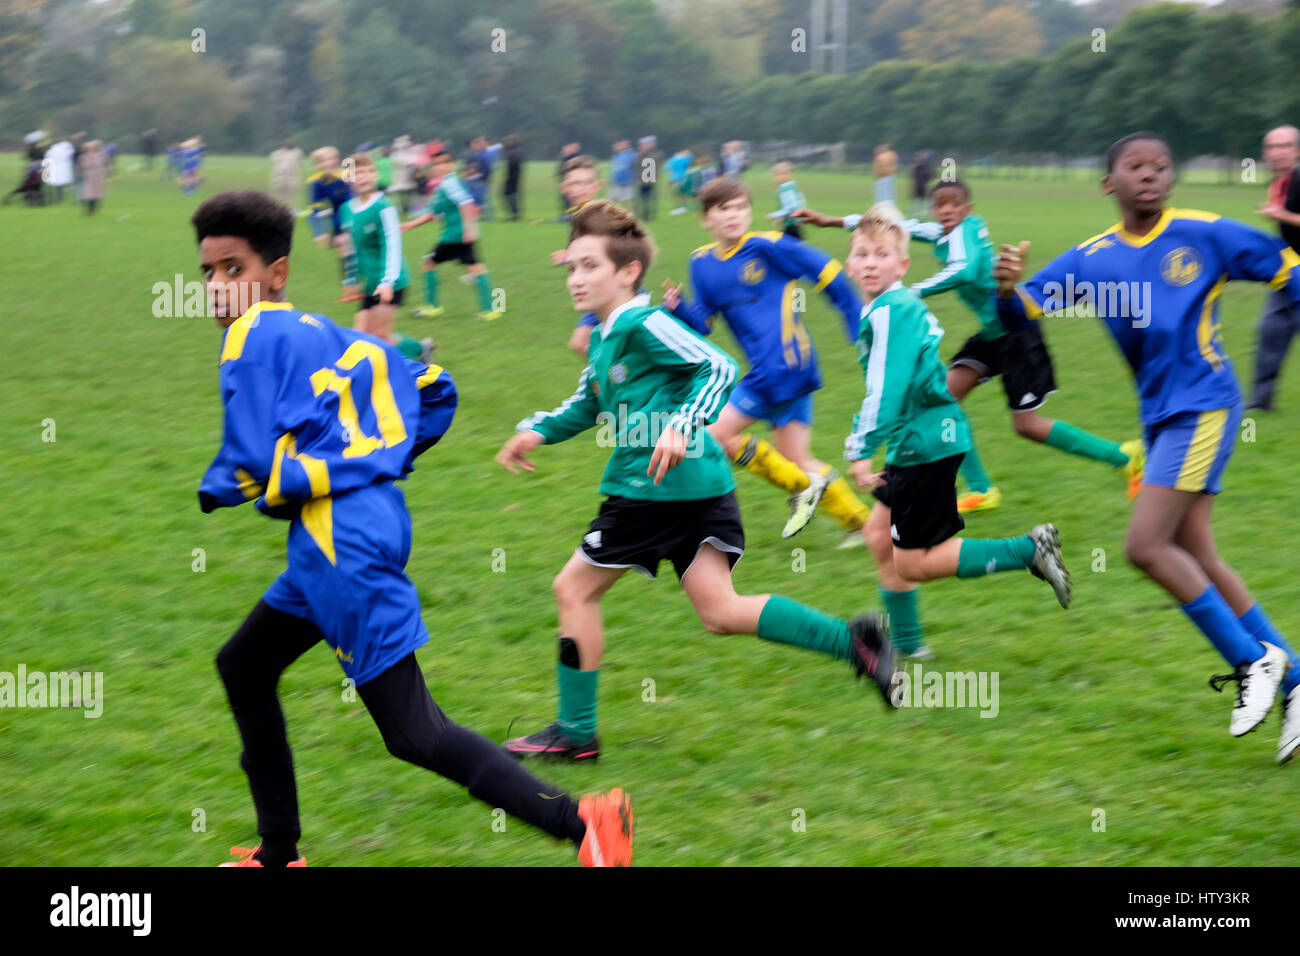 Boys playing football in a park on Saturday morning UK  KATHY DEWITT - Stock Image